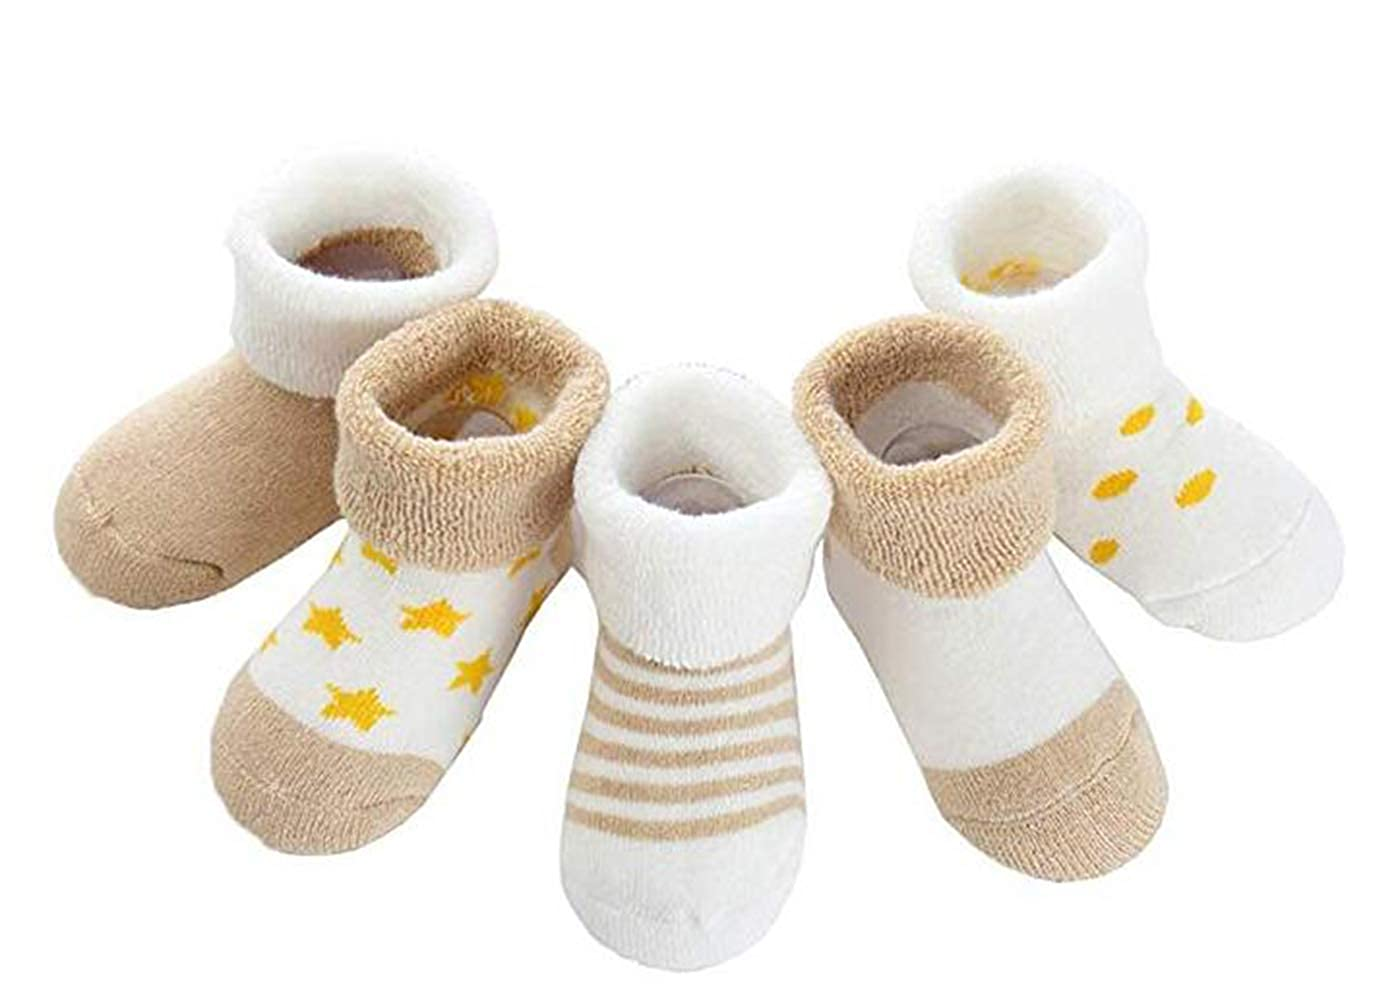 JXUFUFOO Baby Infant Anti-slip Socks Cotton Thick Warm Pack of 5